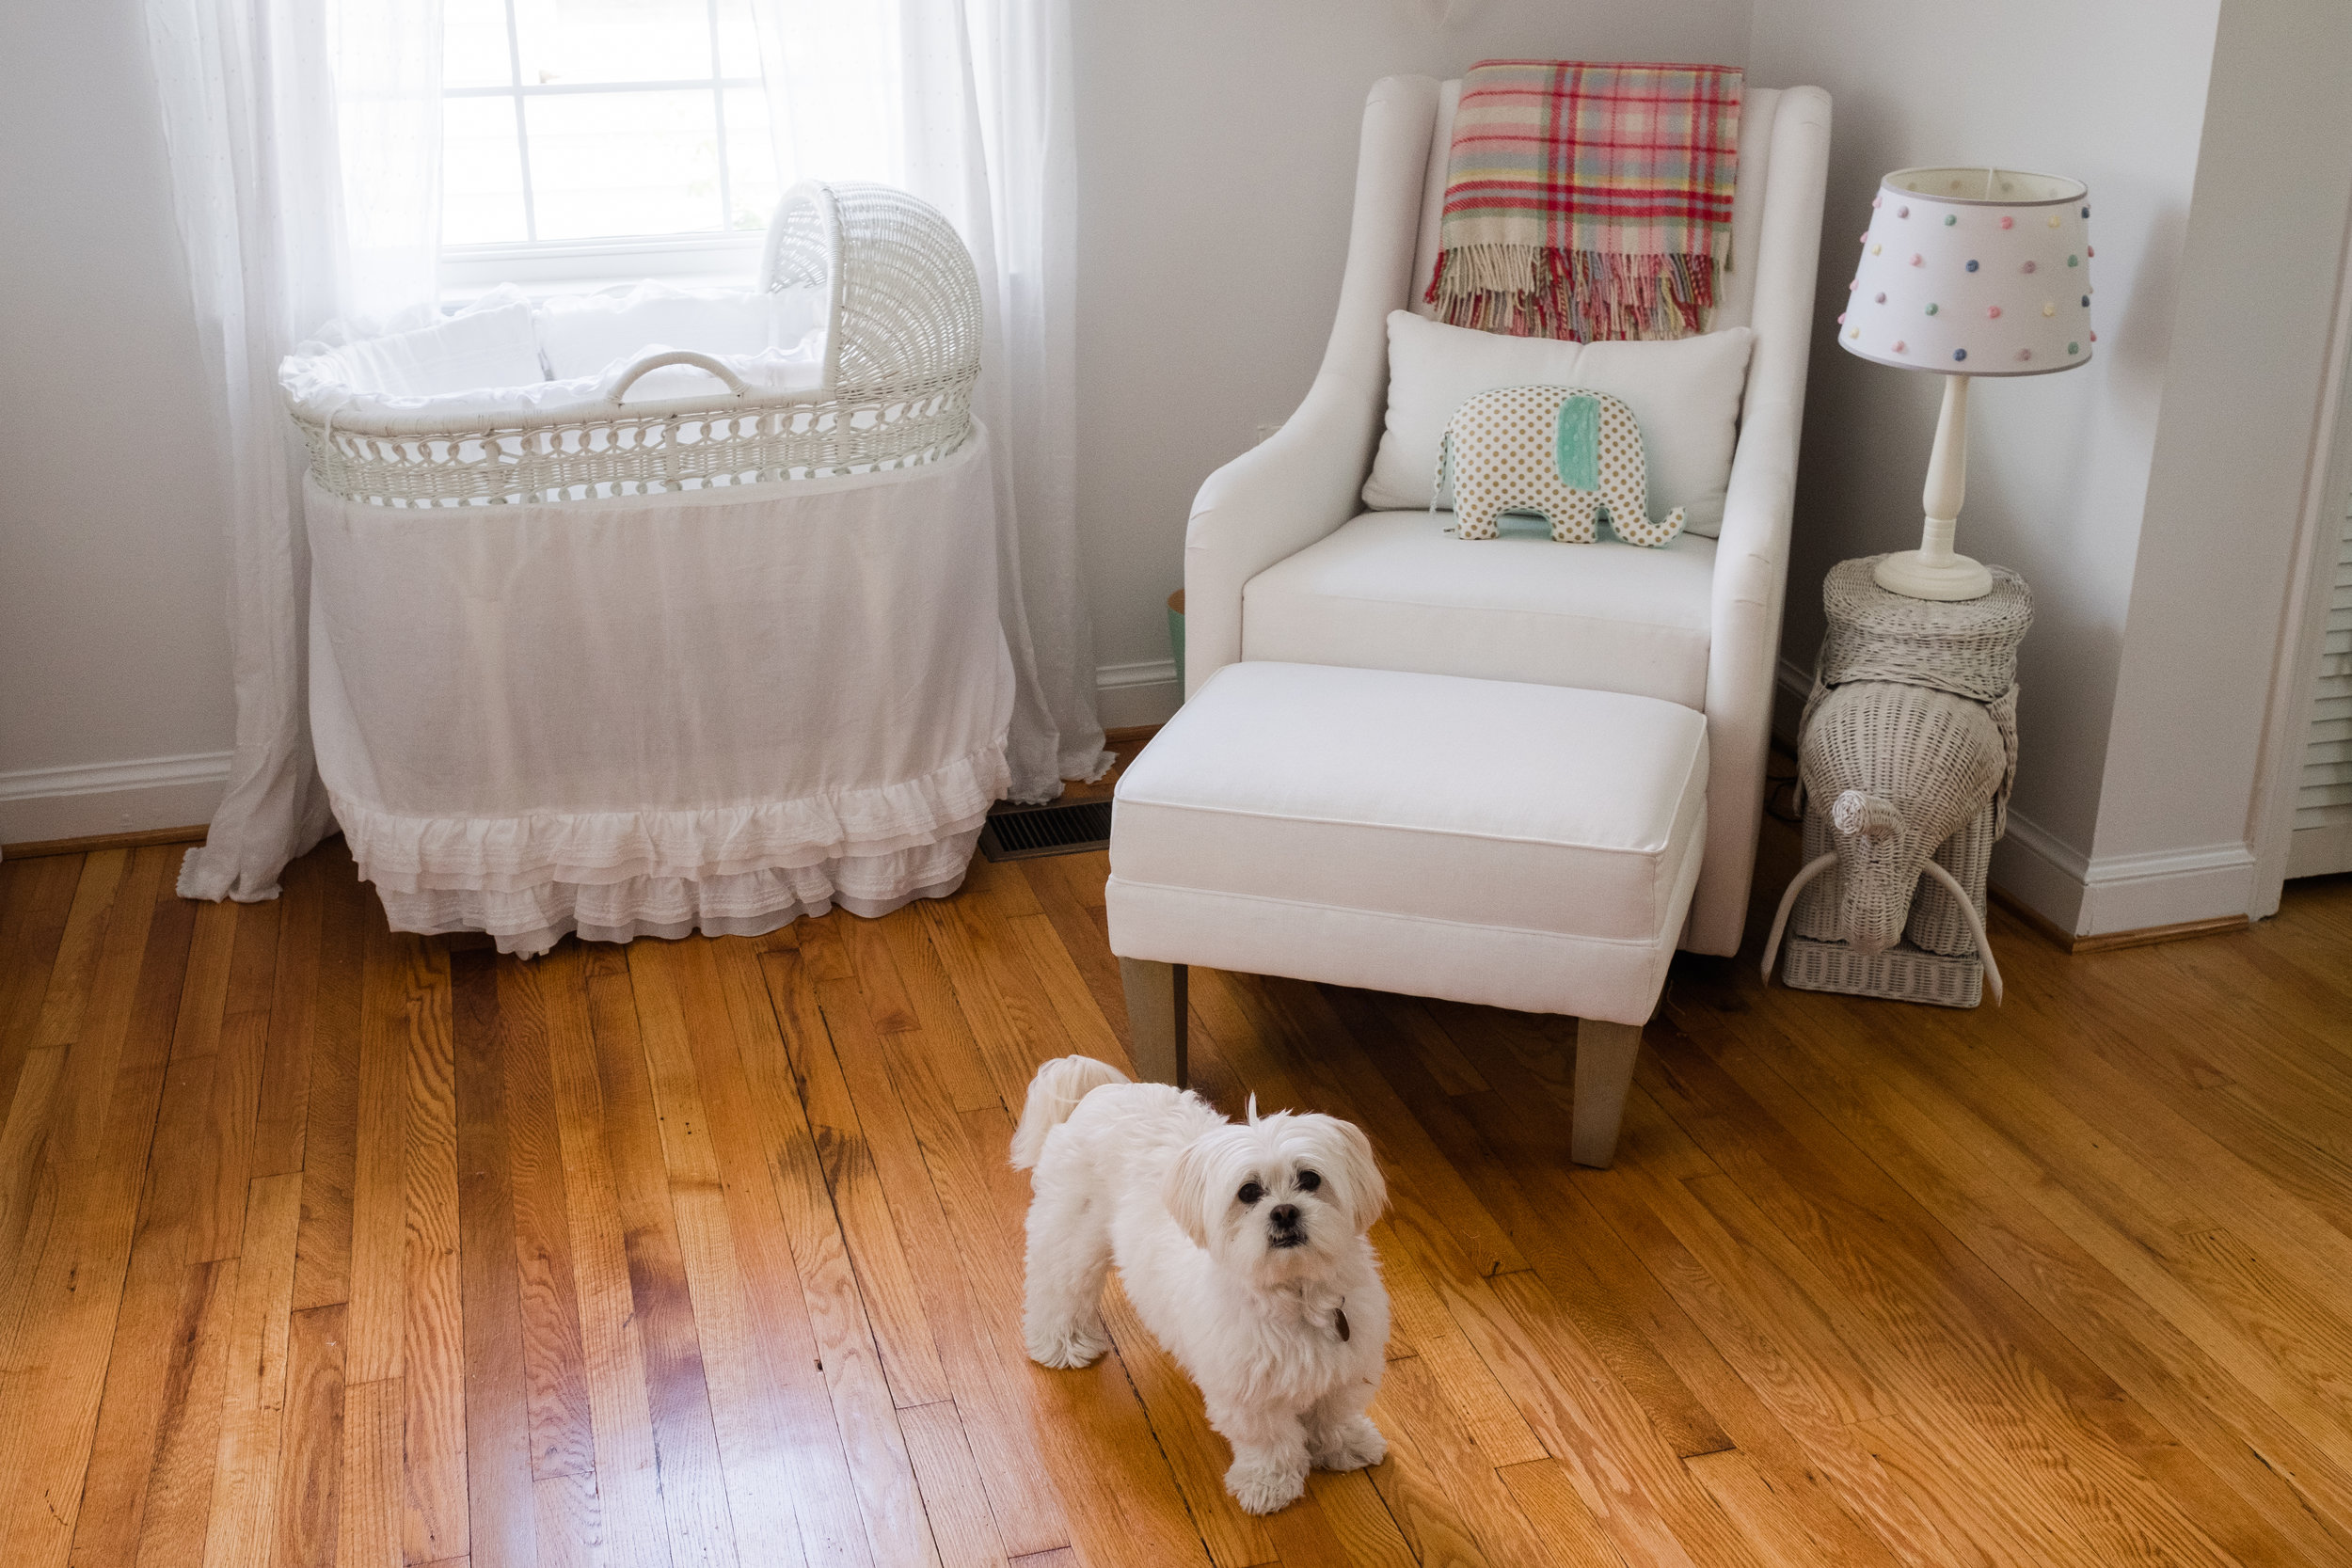 Nursery view chair by window with adorable family puppy dog